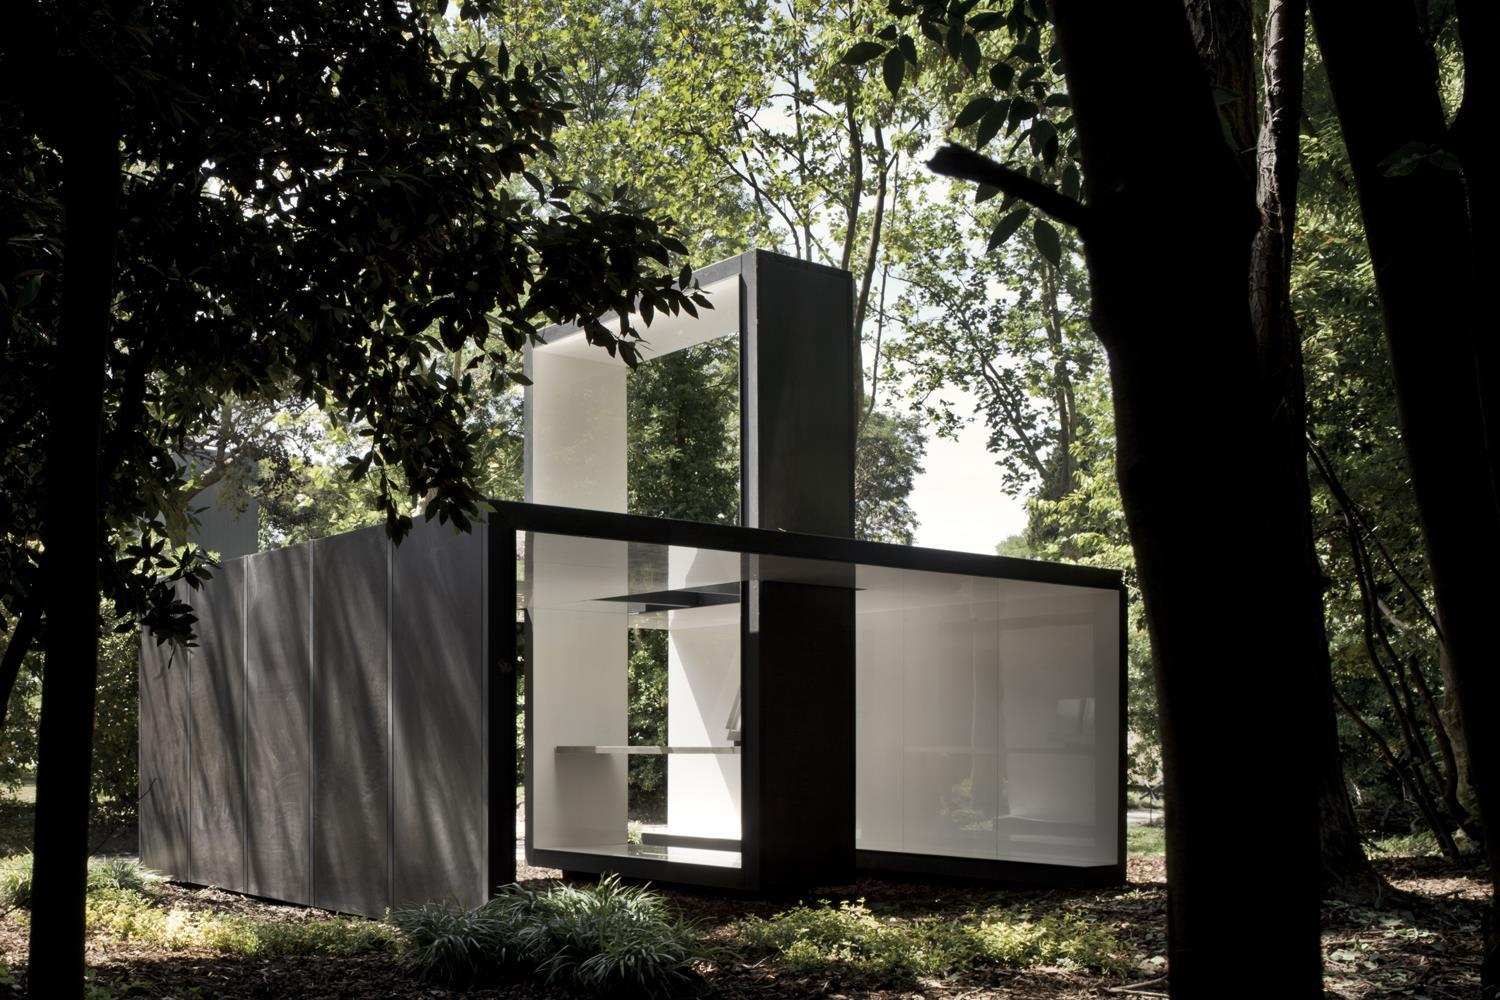 Cotto d'Este and Panariagroup at the Biennale of Architecture in Venice: Photo 4